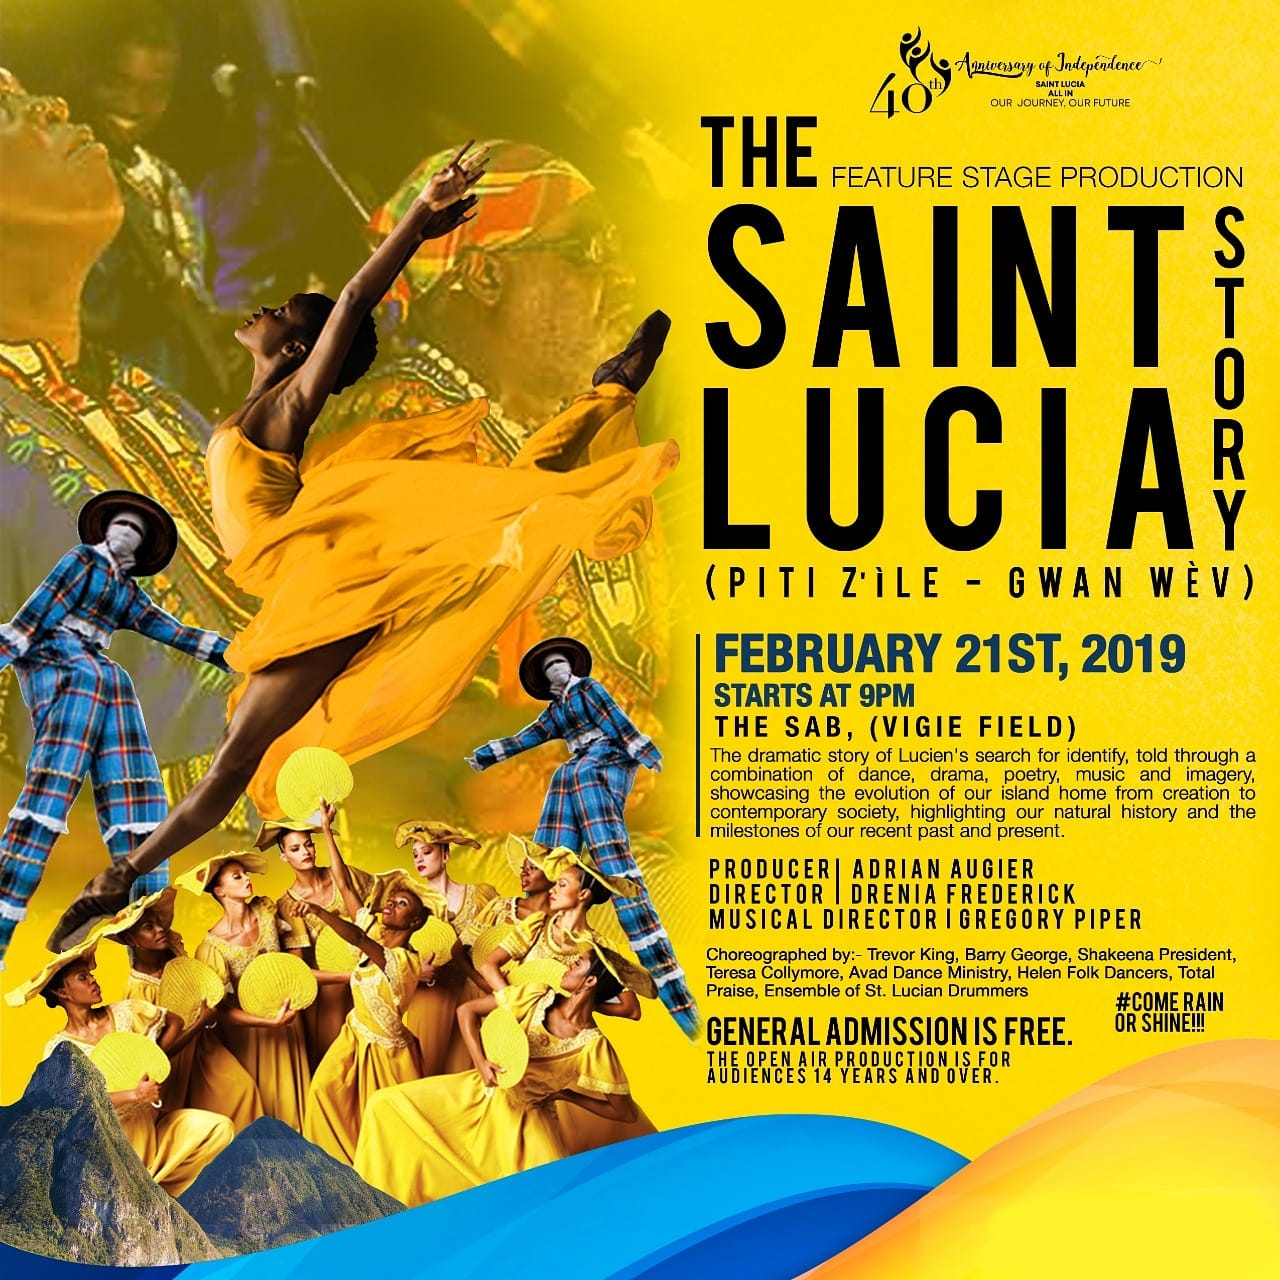 what to do in st lucia 40th anniversary of independence the st lucia story produced by adrian augier, directed by drenia frederick musical director gregory piper